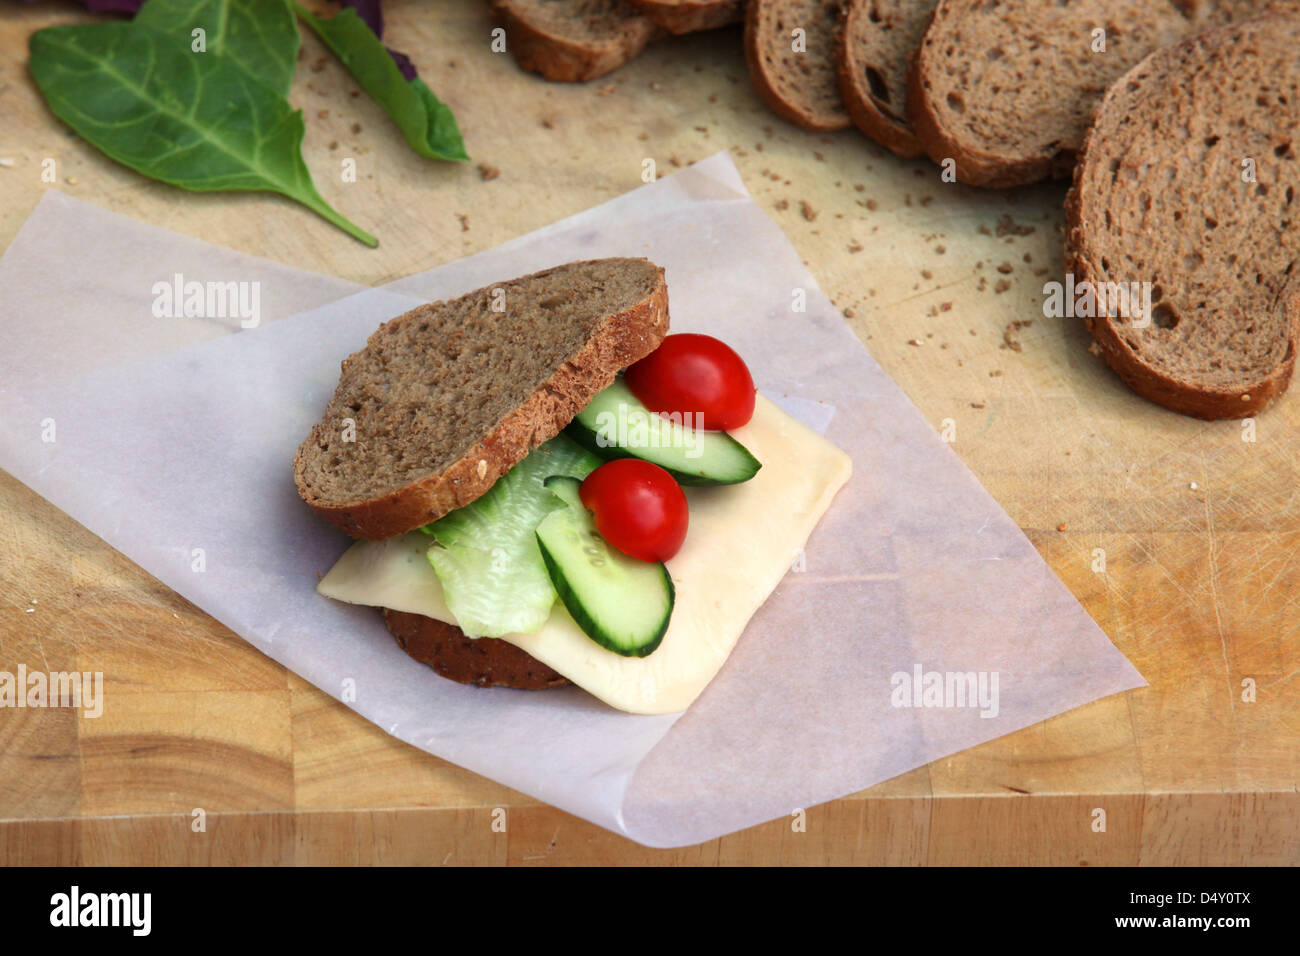 Yellow cheese sandwich with tomato and cucumber - Stock Image